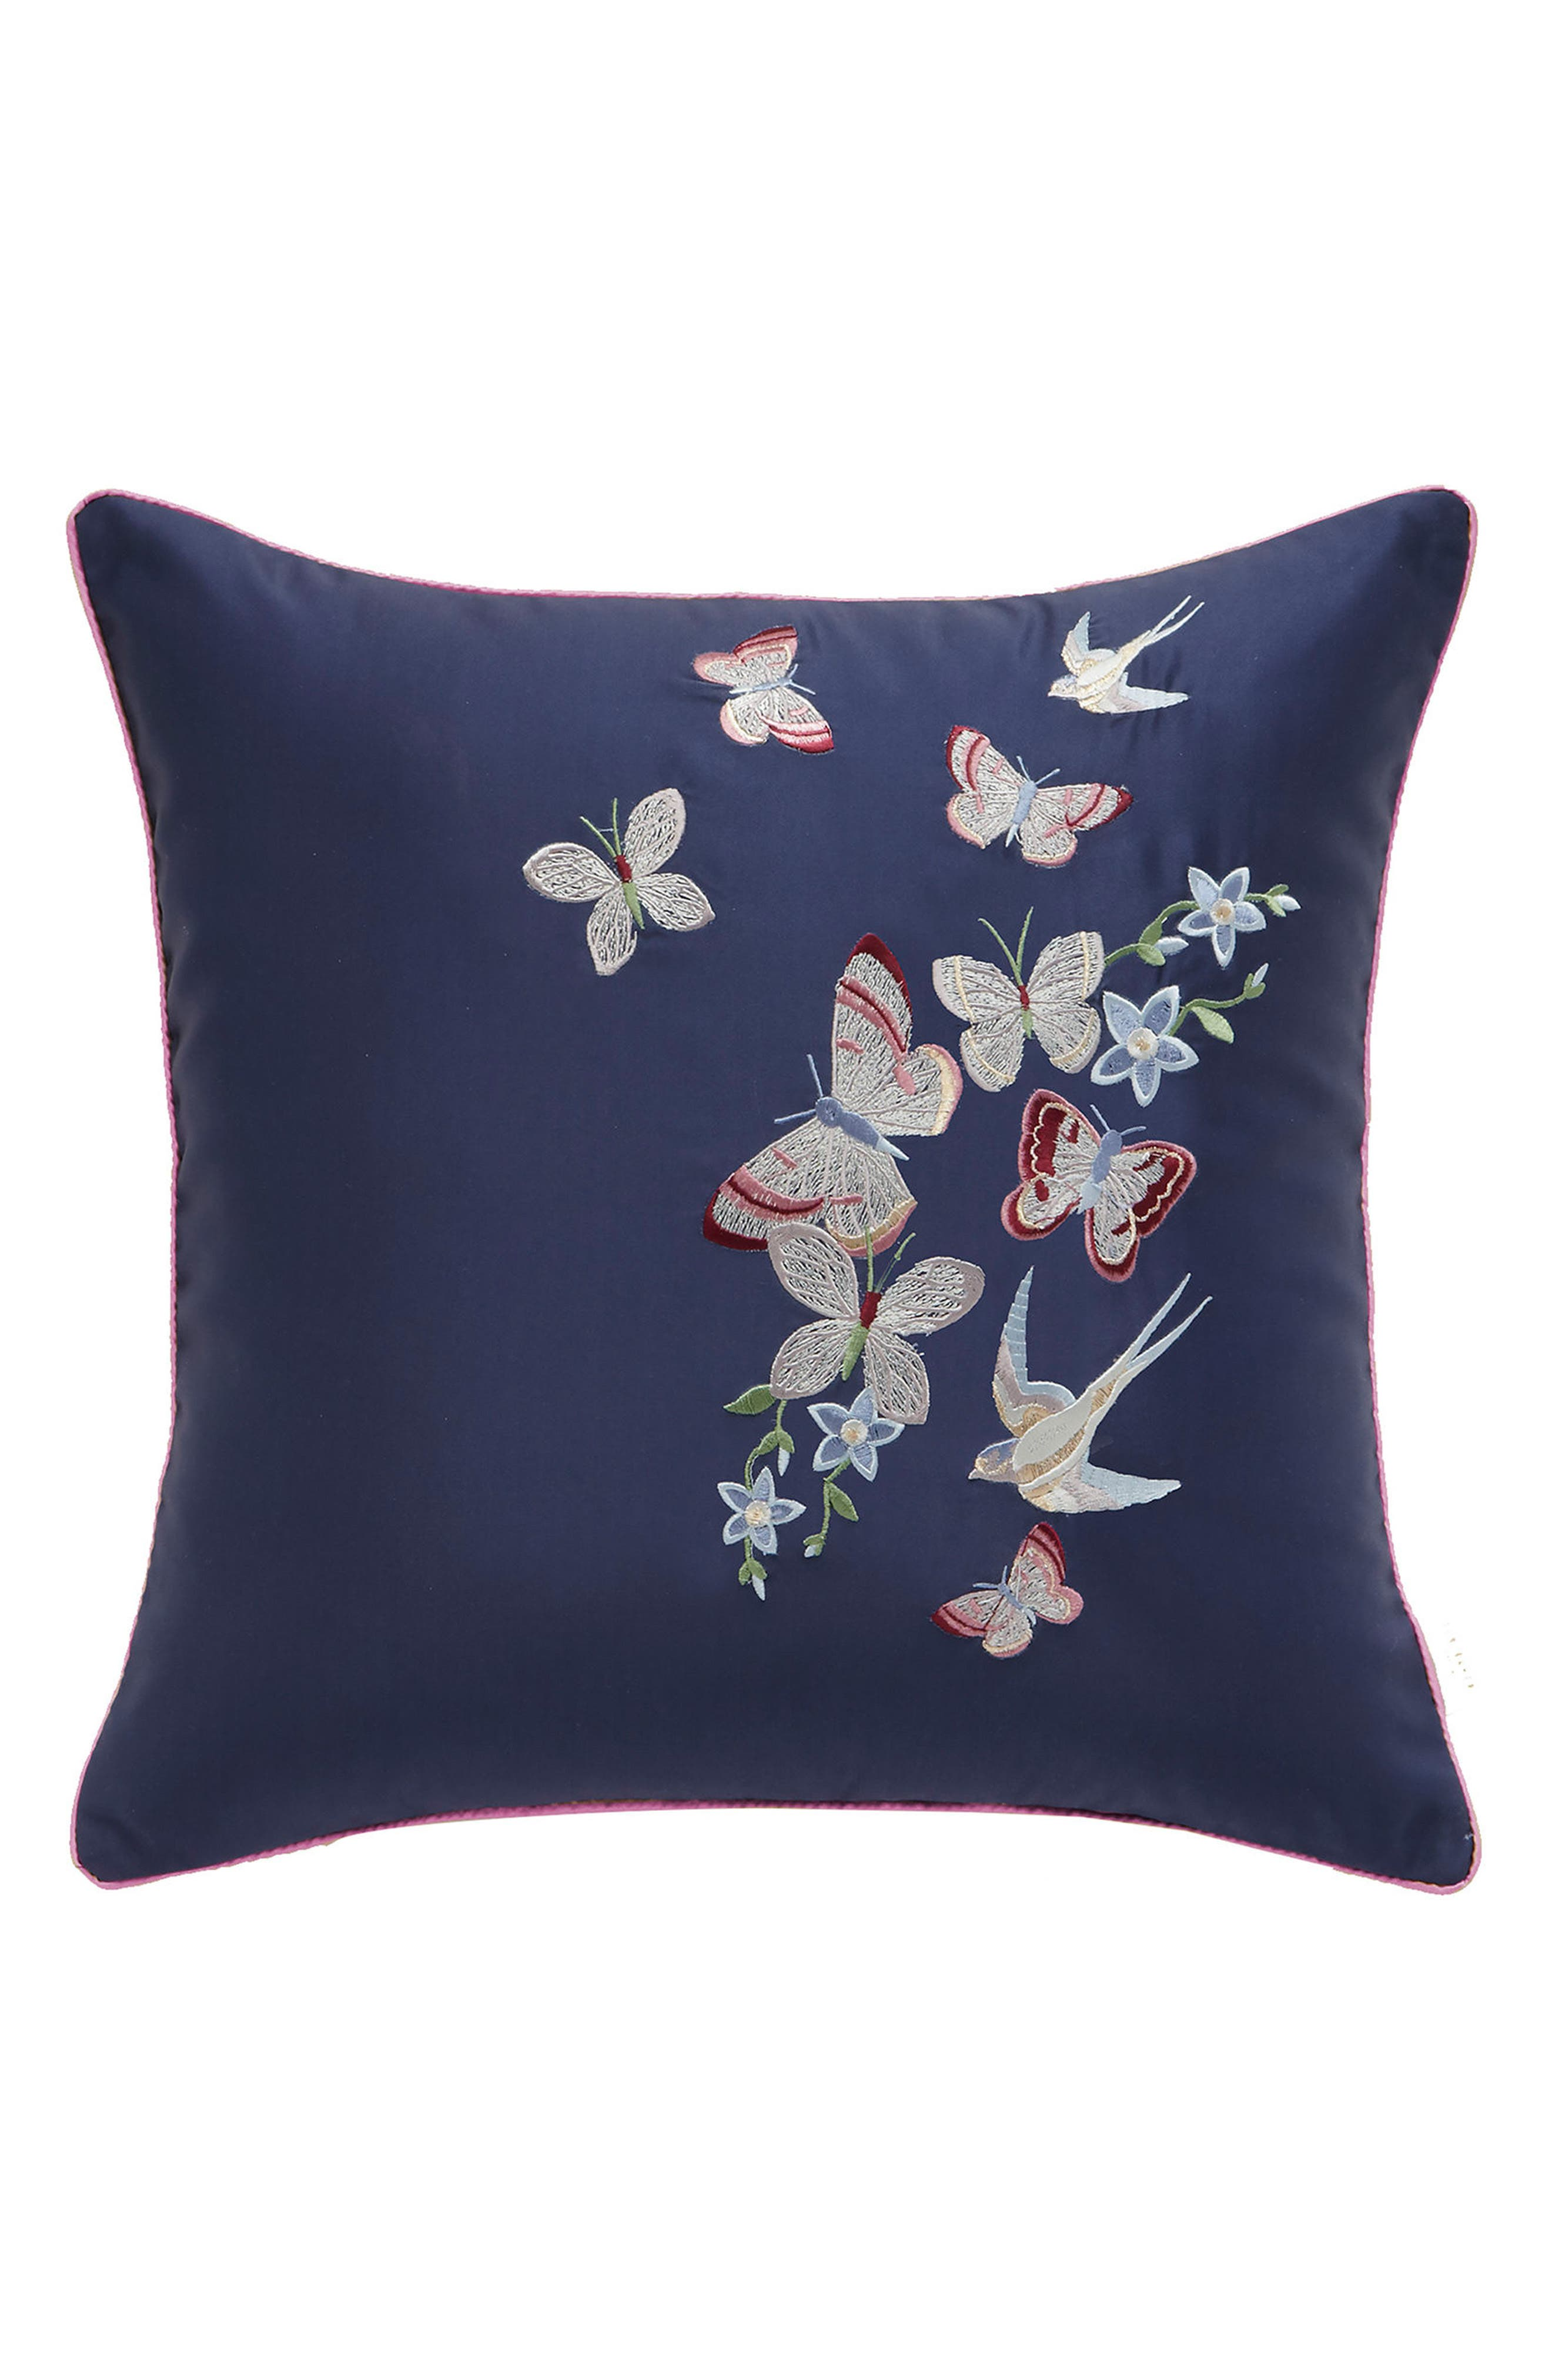 Main Image - Ted Baker London Butterfly Embroidered Accent Pillow